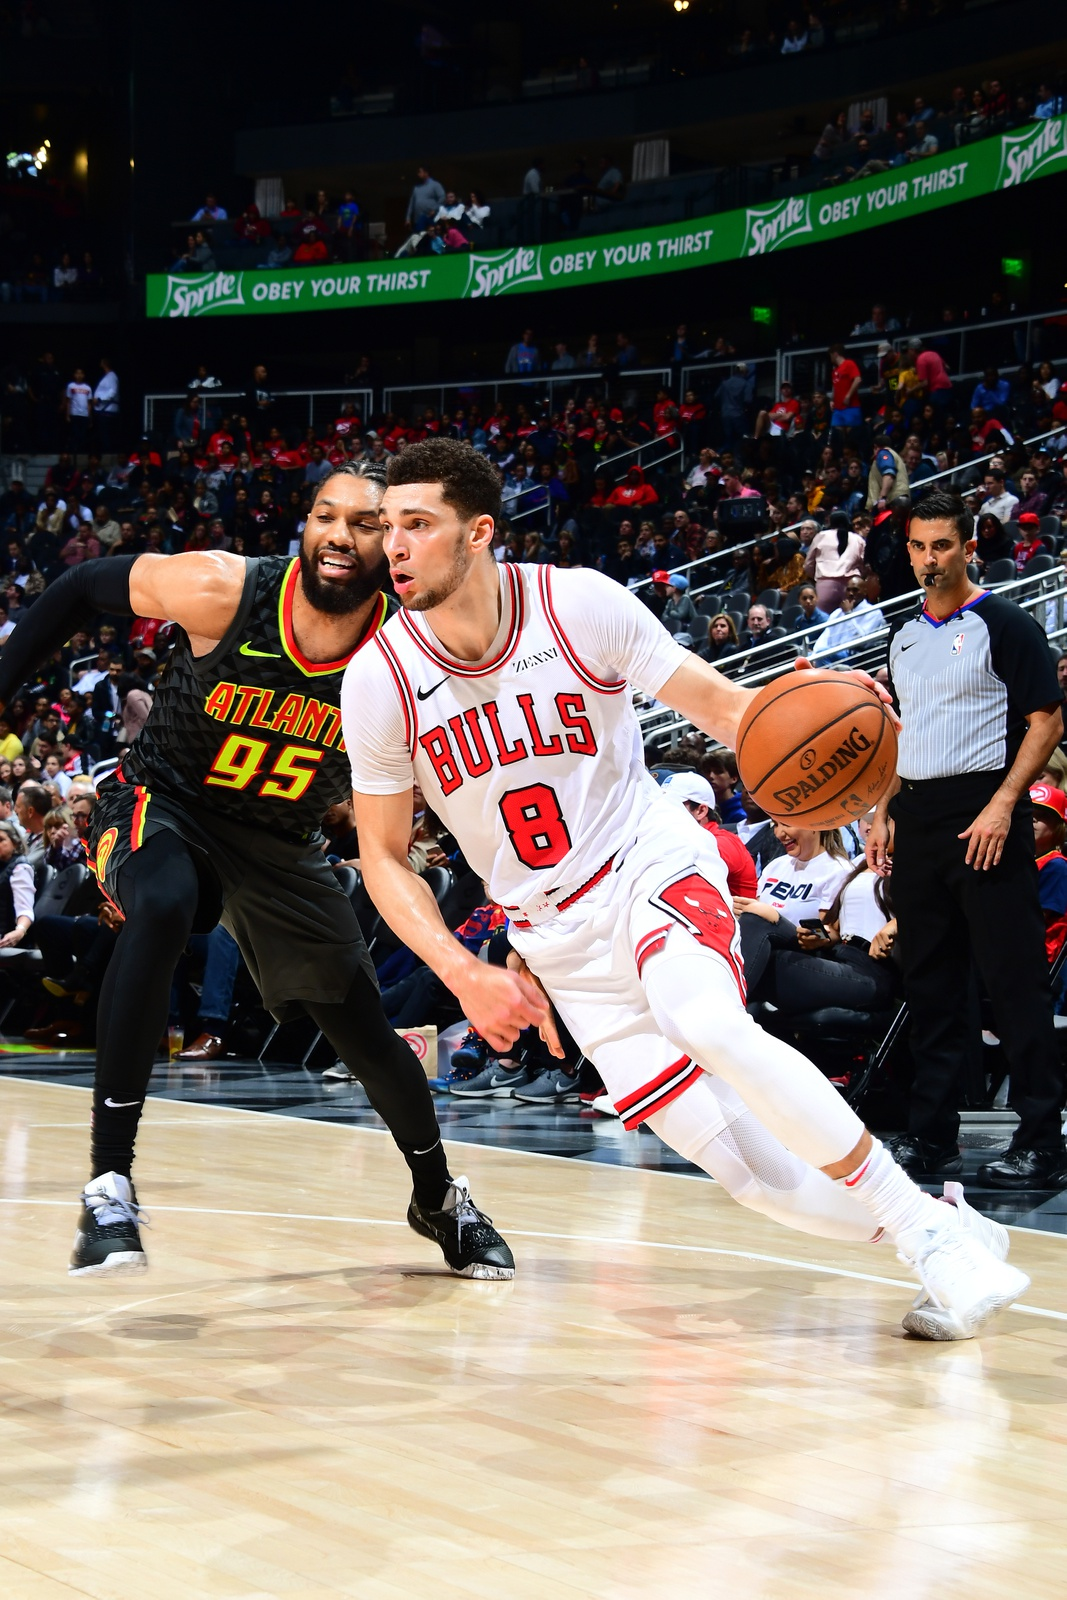 Zach LaVine #8 of the Chicago Bulls drives to the basket against the Atlanta Hawks on March 1, 2019 at State Farm Arena in Atlanta, Georgia.